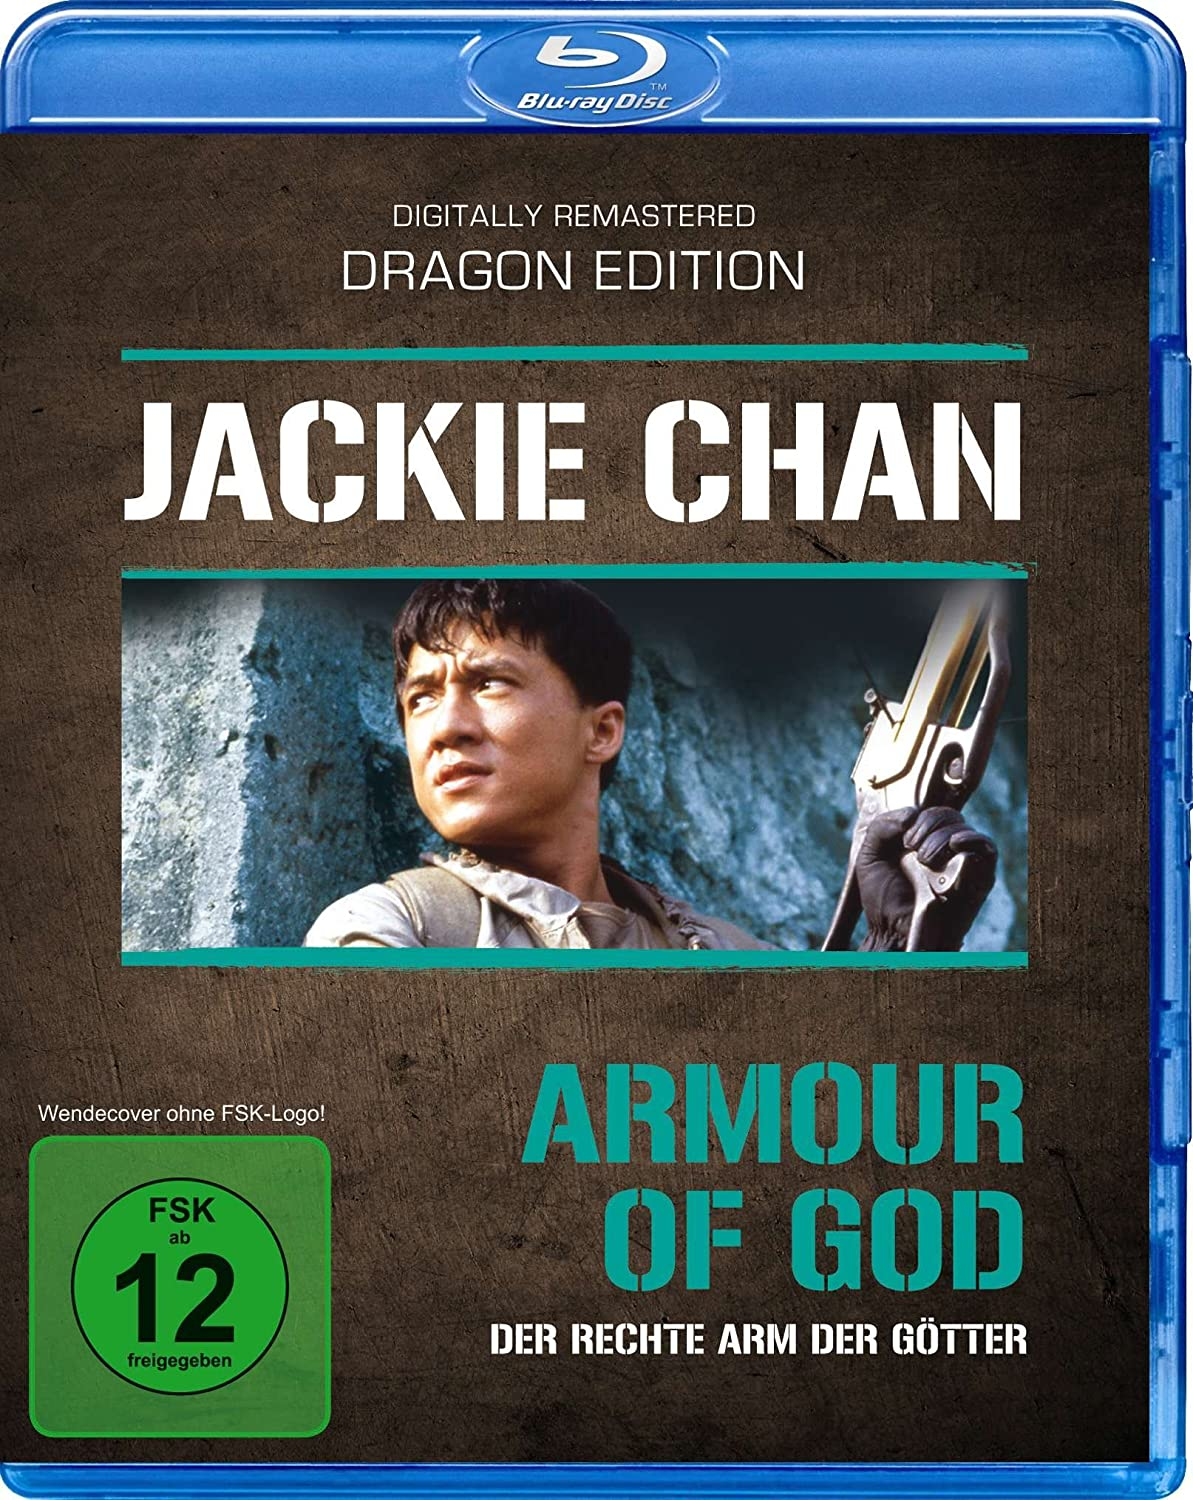 Armour of God - Der rechte Arm der Götter (Blu-ray)